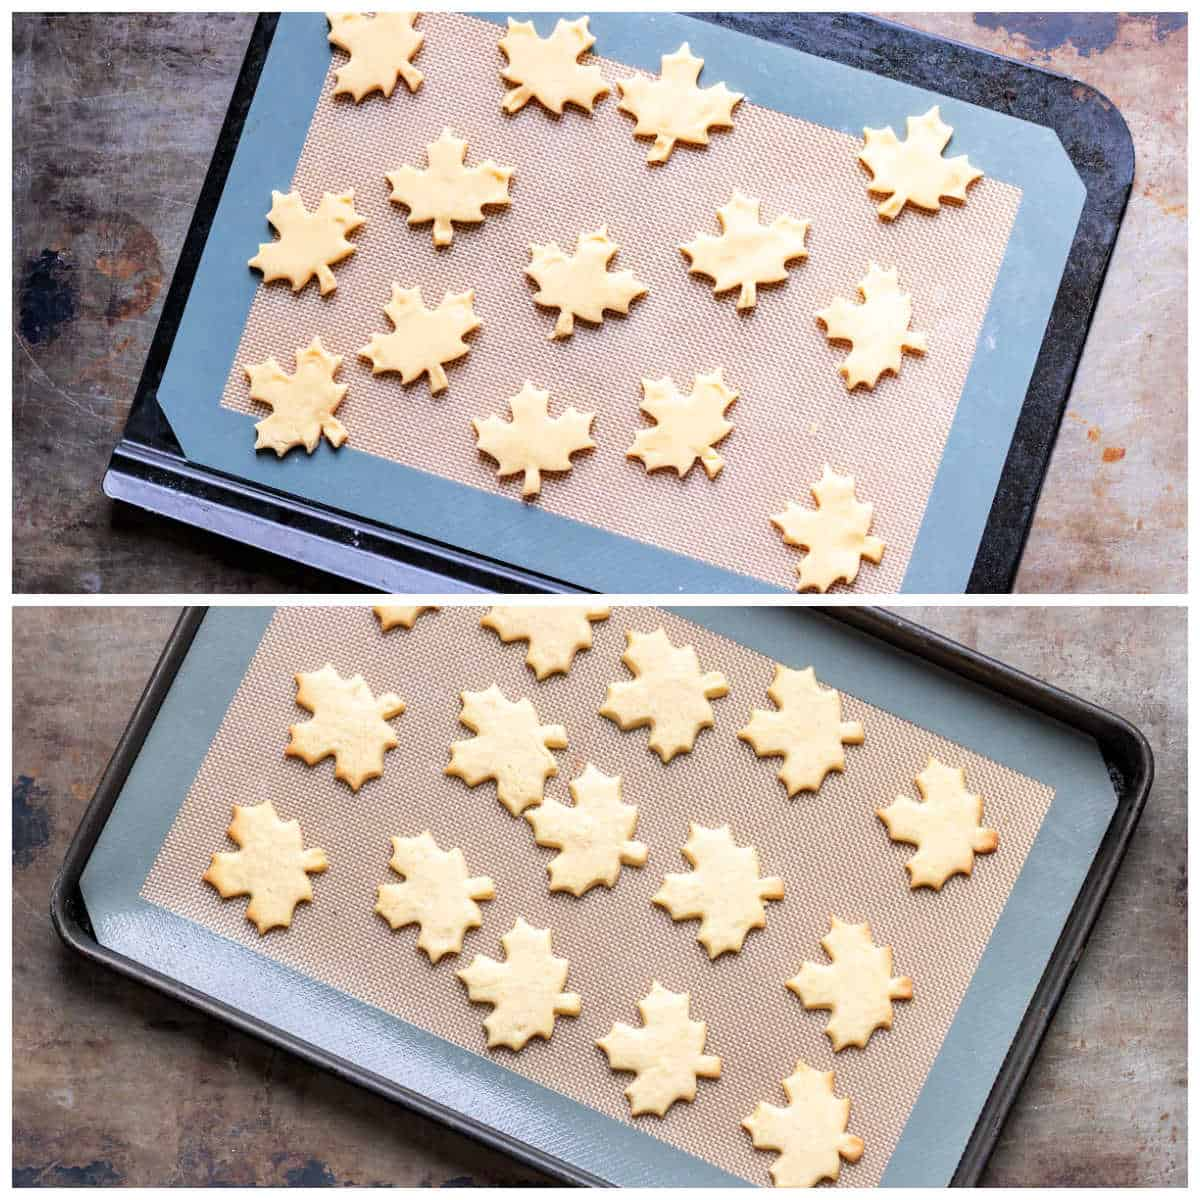 Baked and unbaked cookies on a cookie sheet.